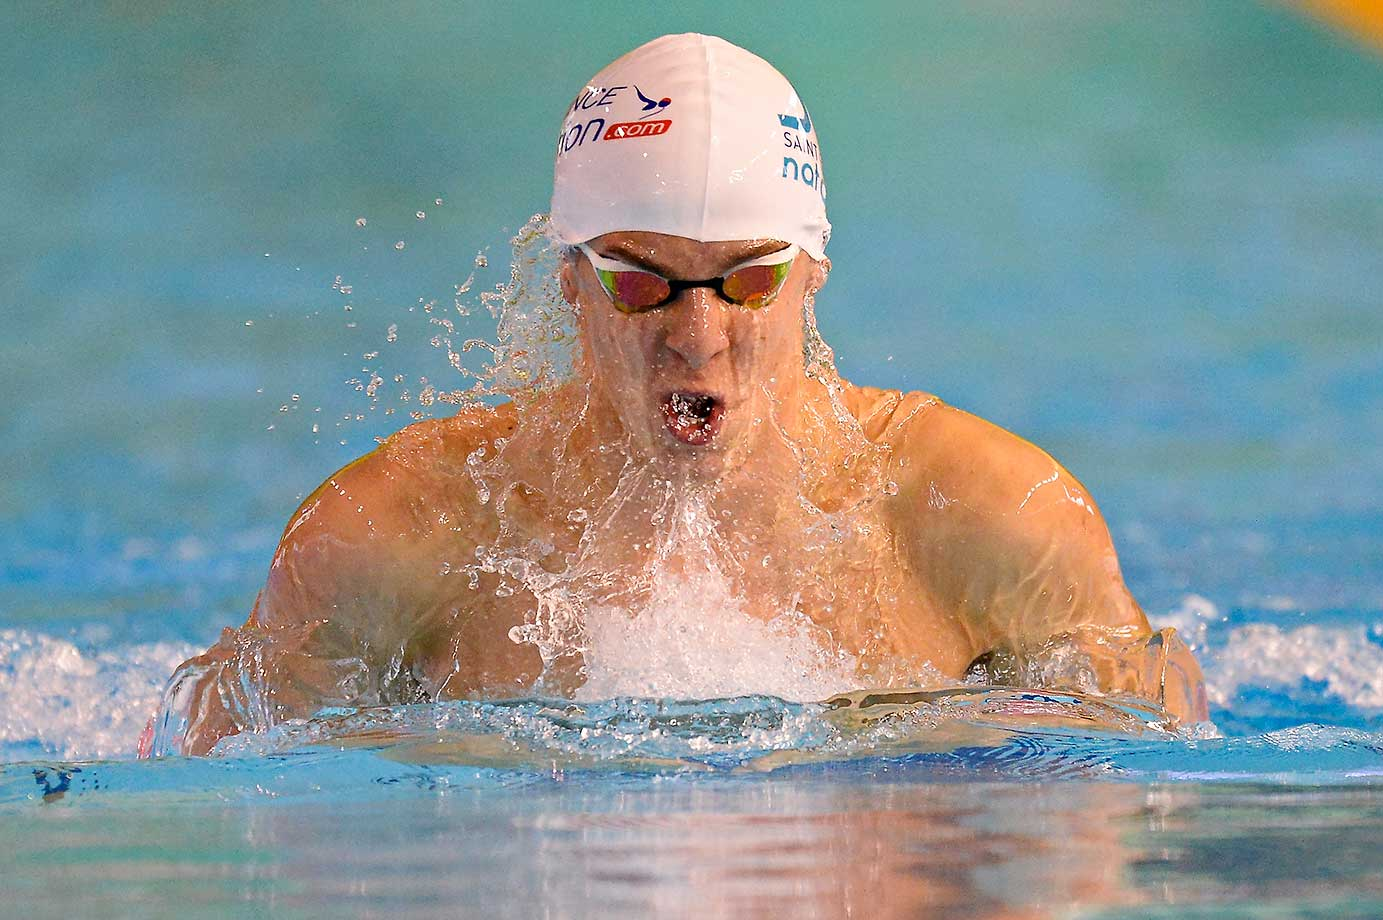 Julien Valour of France in the 200m breaststroke at the French National Swimming Championships.